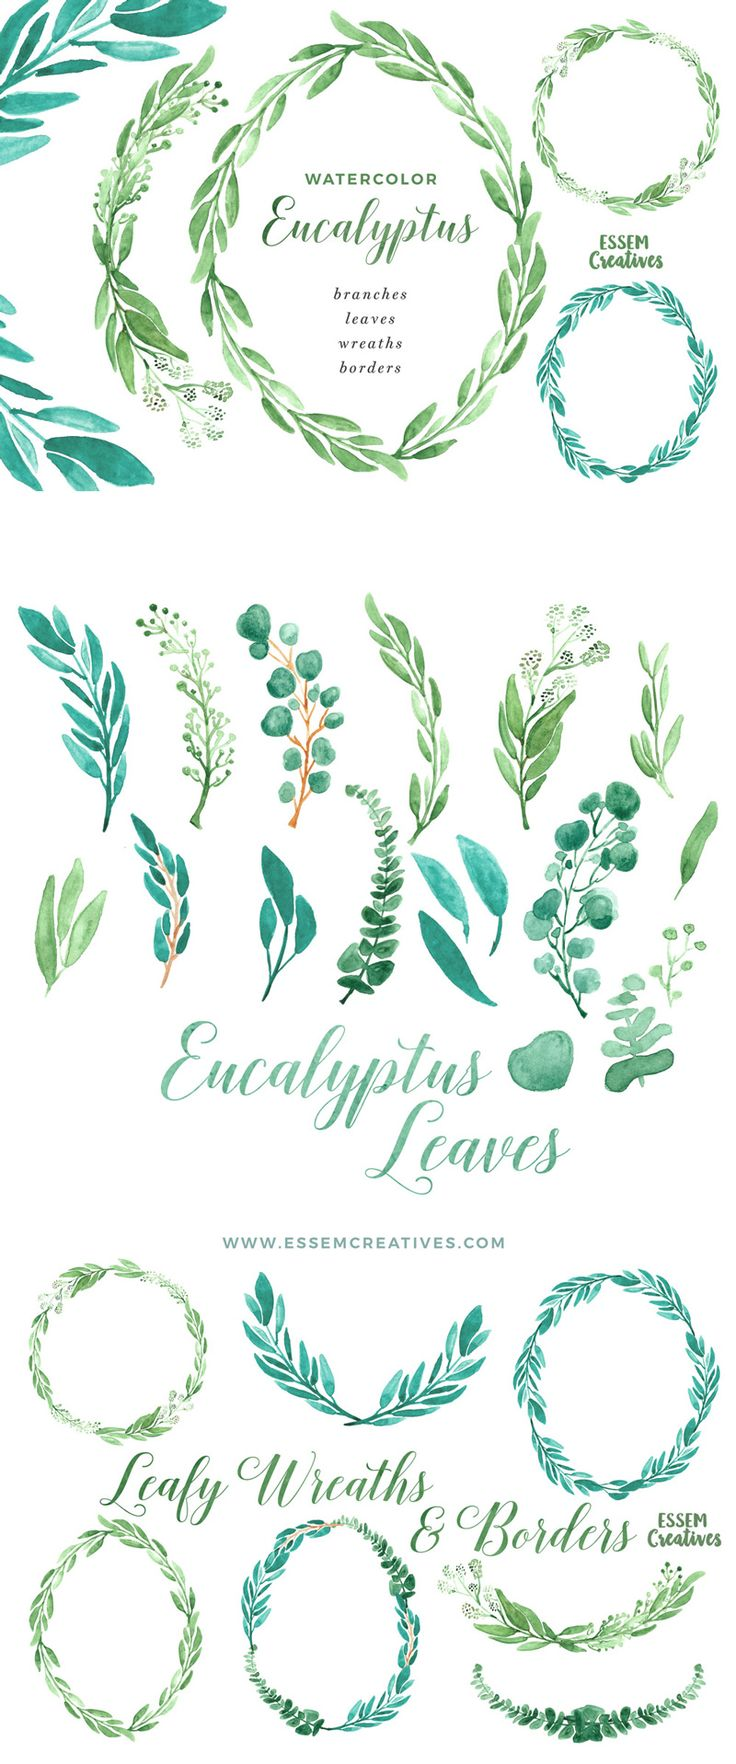 Watercolor Eucalyptus Clipart, Eucalyptus Wreaths Borders and Frames This is a set of hand painted Watercolor Eucalyptus Clipart featuring branches, wreaths, borders and frames. Eucalyptus is a super modern and trendy concept which are perfect for wedding invitations & save the date designs. Also perfect for logos & branding projects.  This set includes, delicate, modern looking eucalyptus leaf graphics in stunning vibrant shades painted in a delicate, painterly style. Click to see more>>